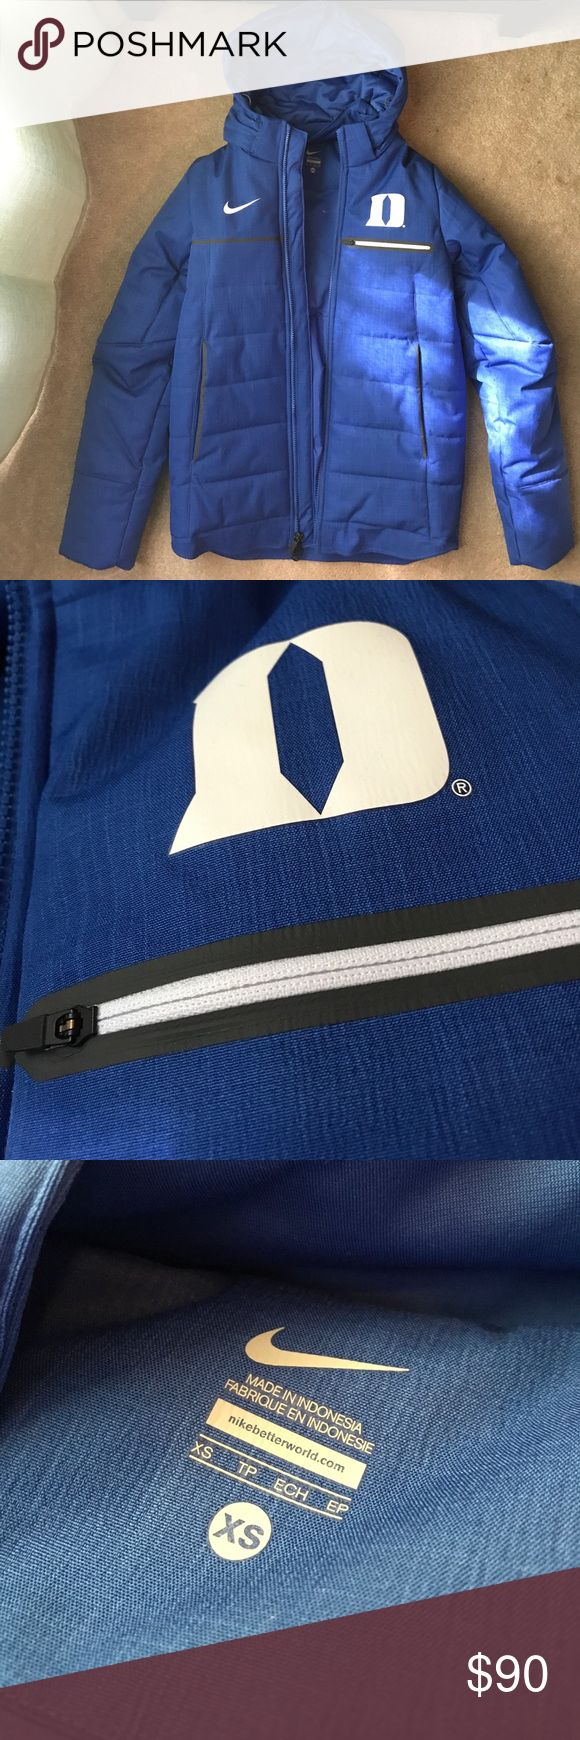 Nike Duke Blue Winter jacket. Never worn. Nike Winter puffer jacket. 100% Polyester. Three zip pockets. Never worn. Was too small for me. Nike Jackets & Coats Puffers